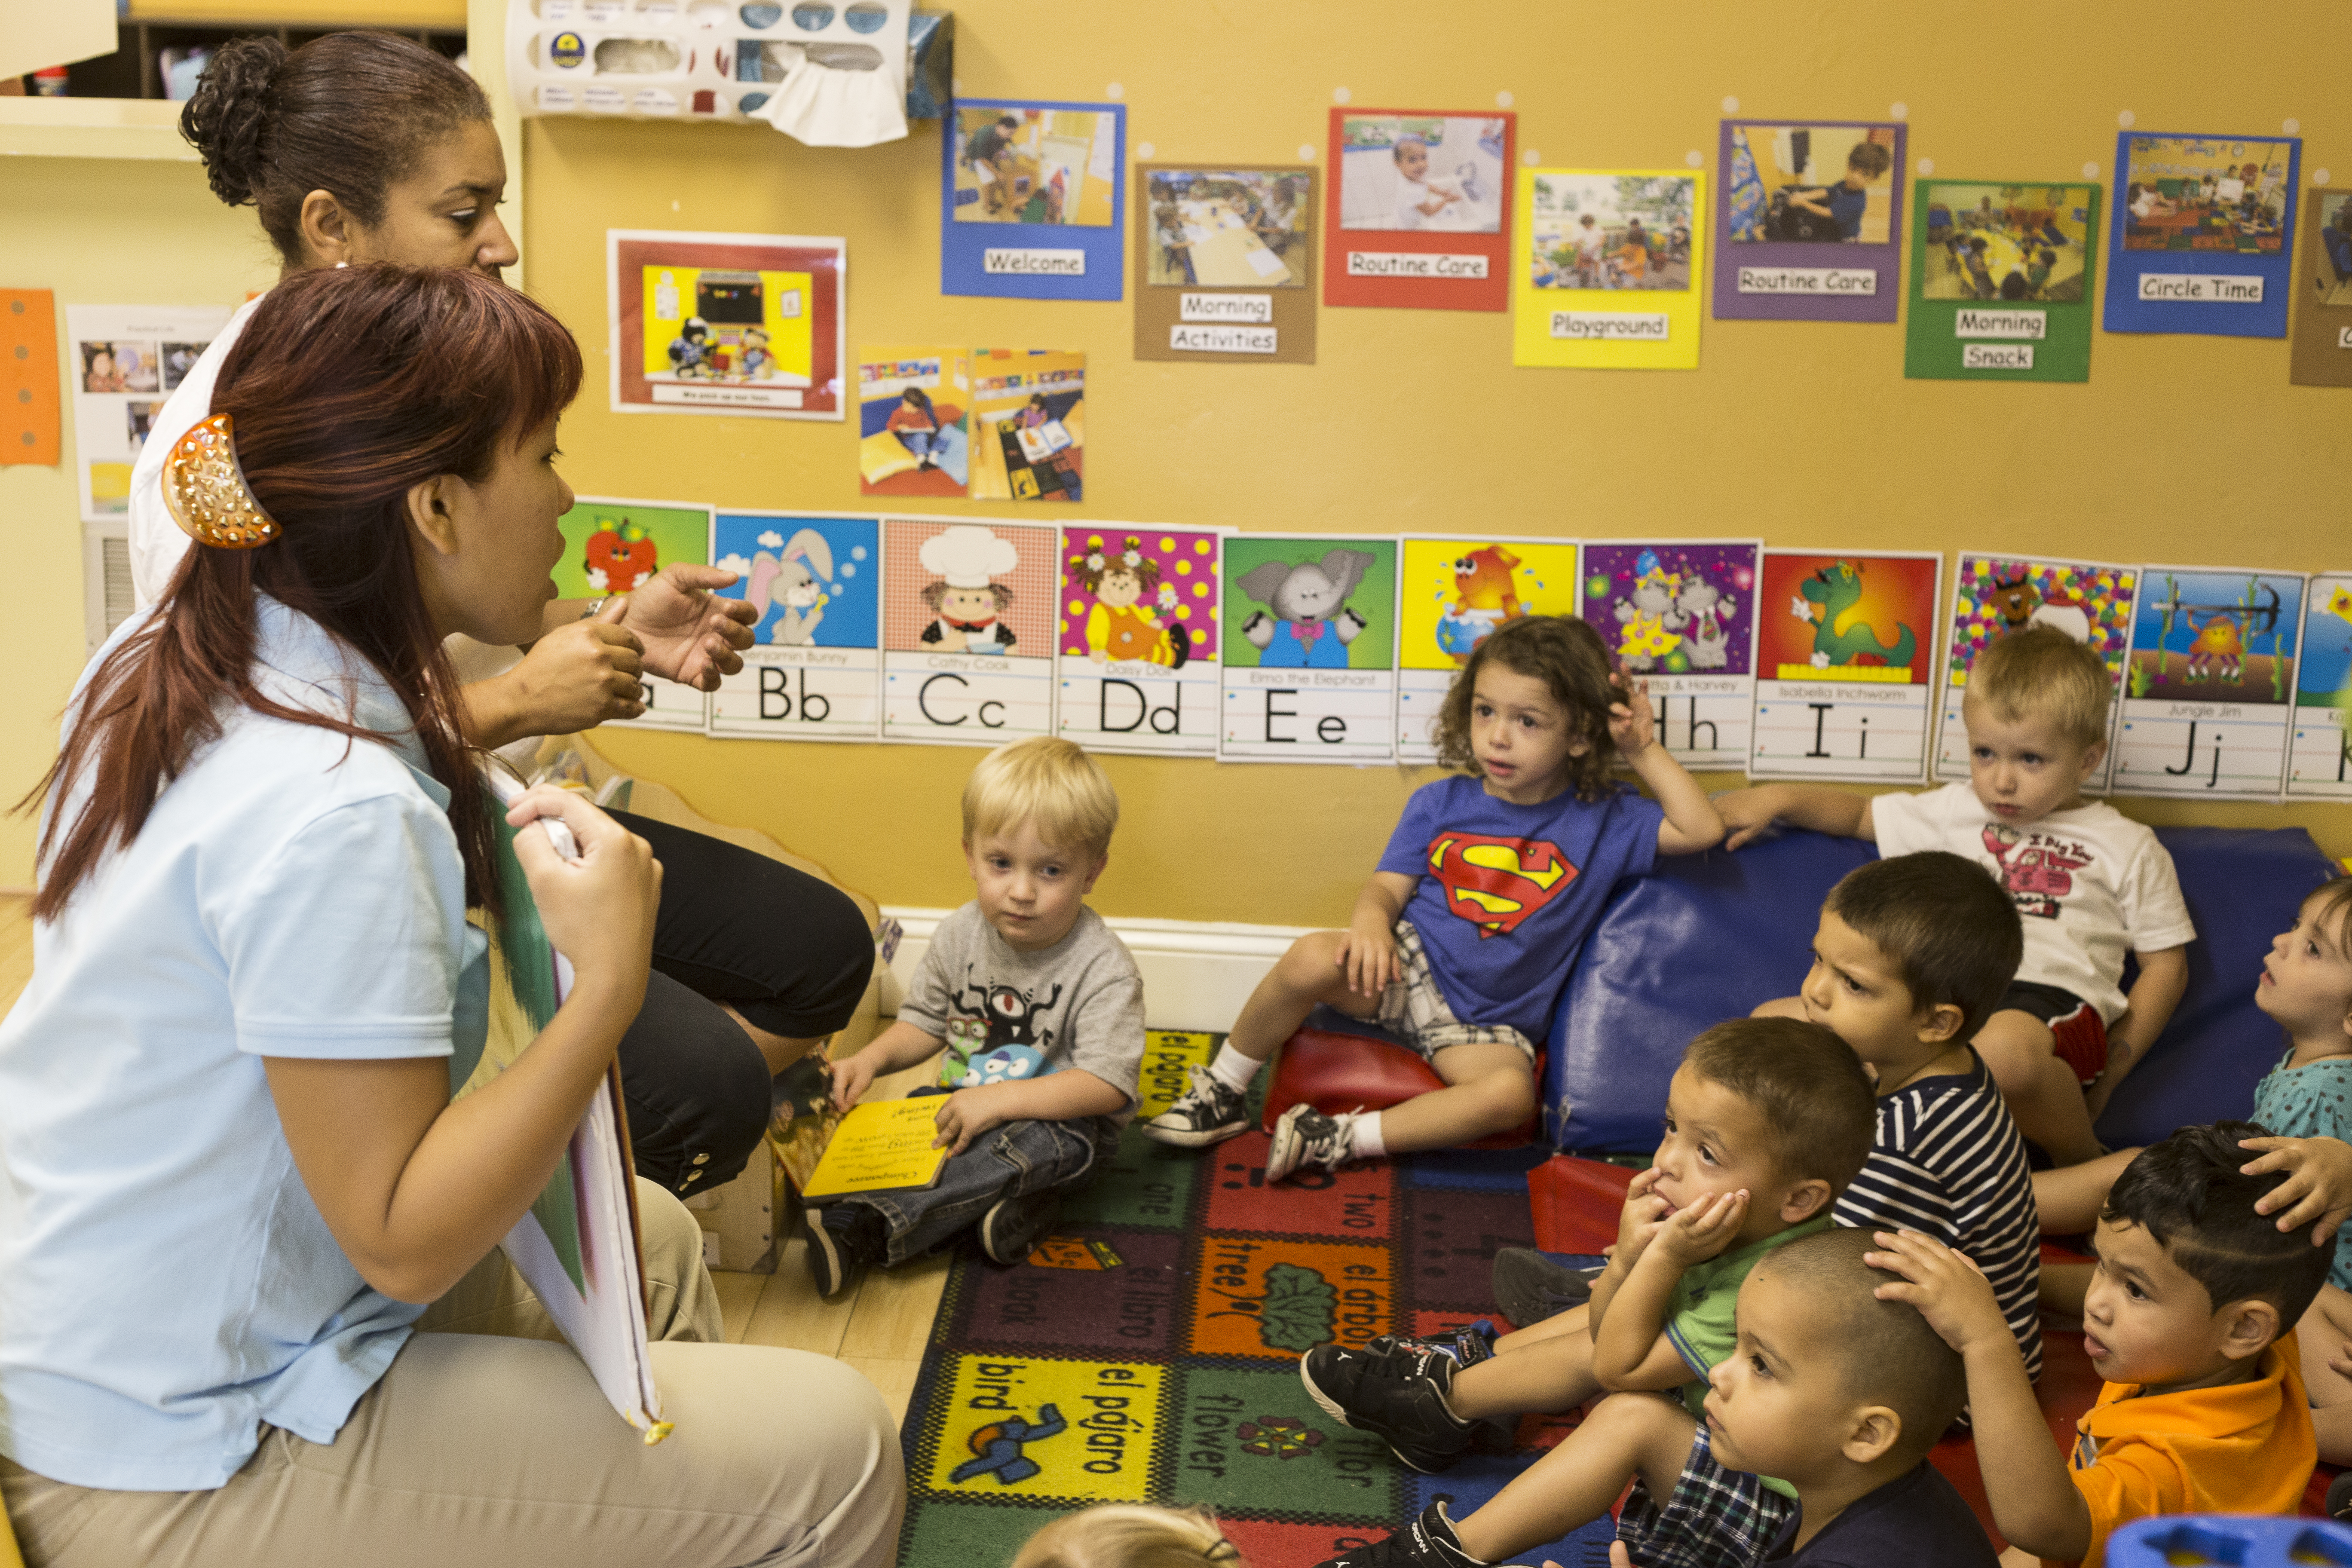 Fostering Moral Development in the Classroom